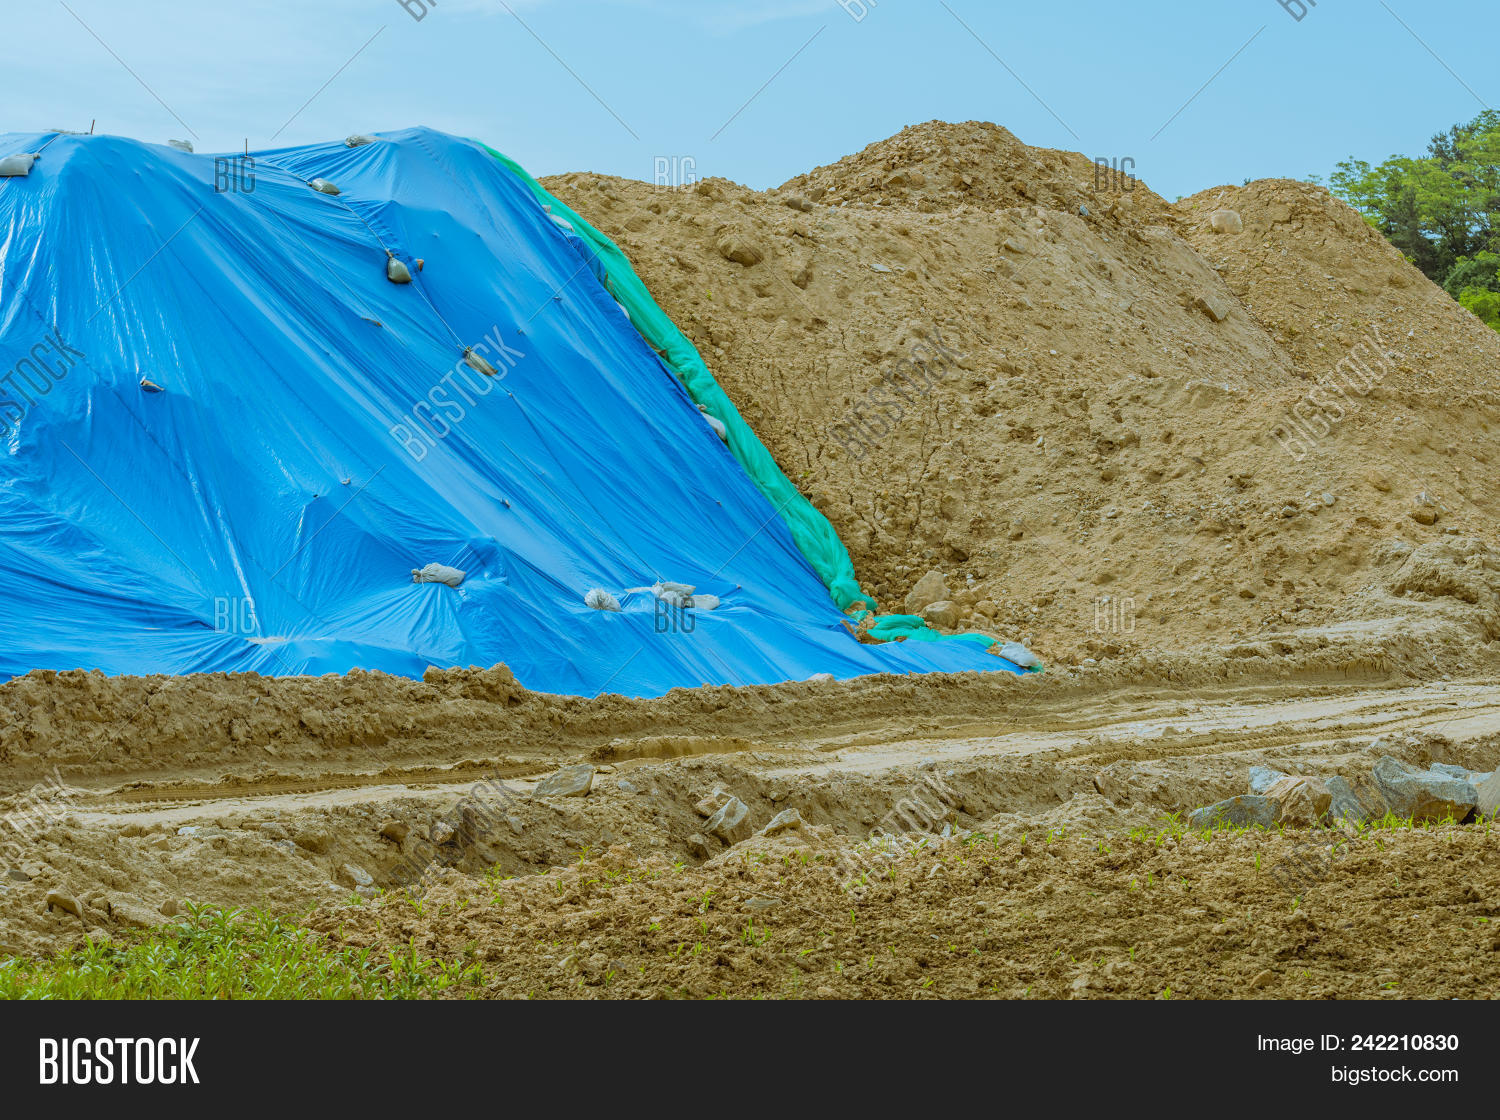 Large Hill Dirt Image & Photo (Free Trial) | Bigstock